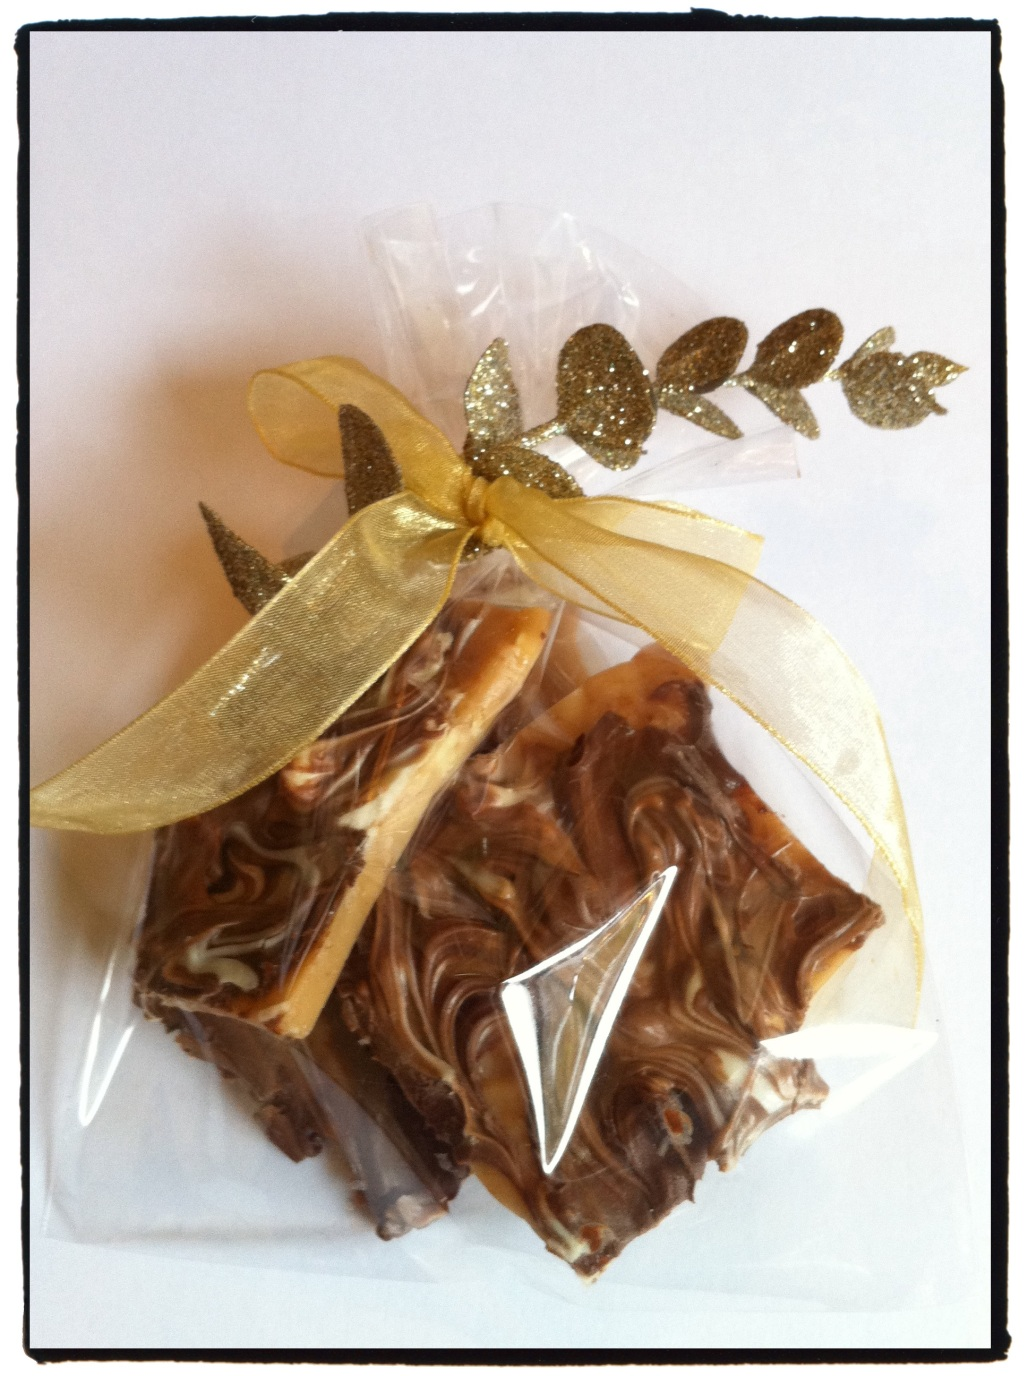 Packaged Toffee